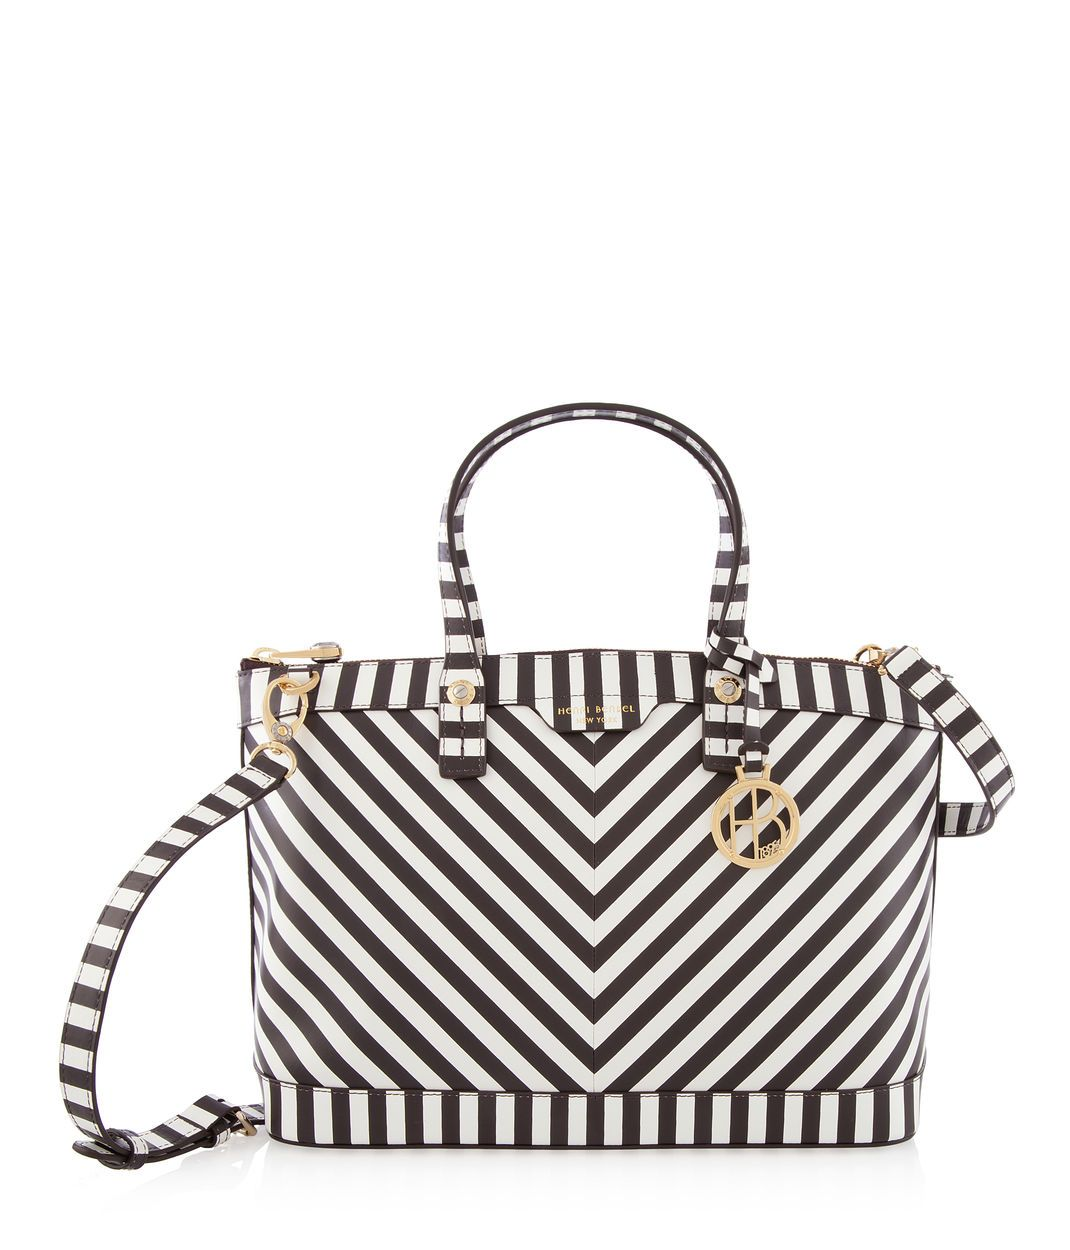 West 57th Centennial Stripe Satchel Matching Handbags Wallets Henri Bendel